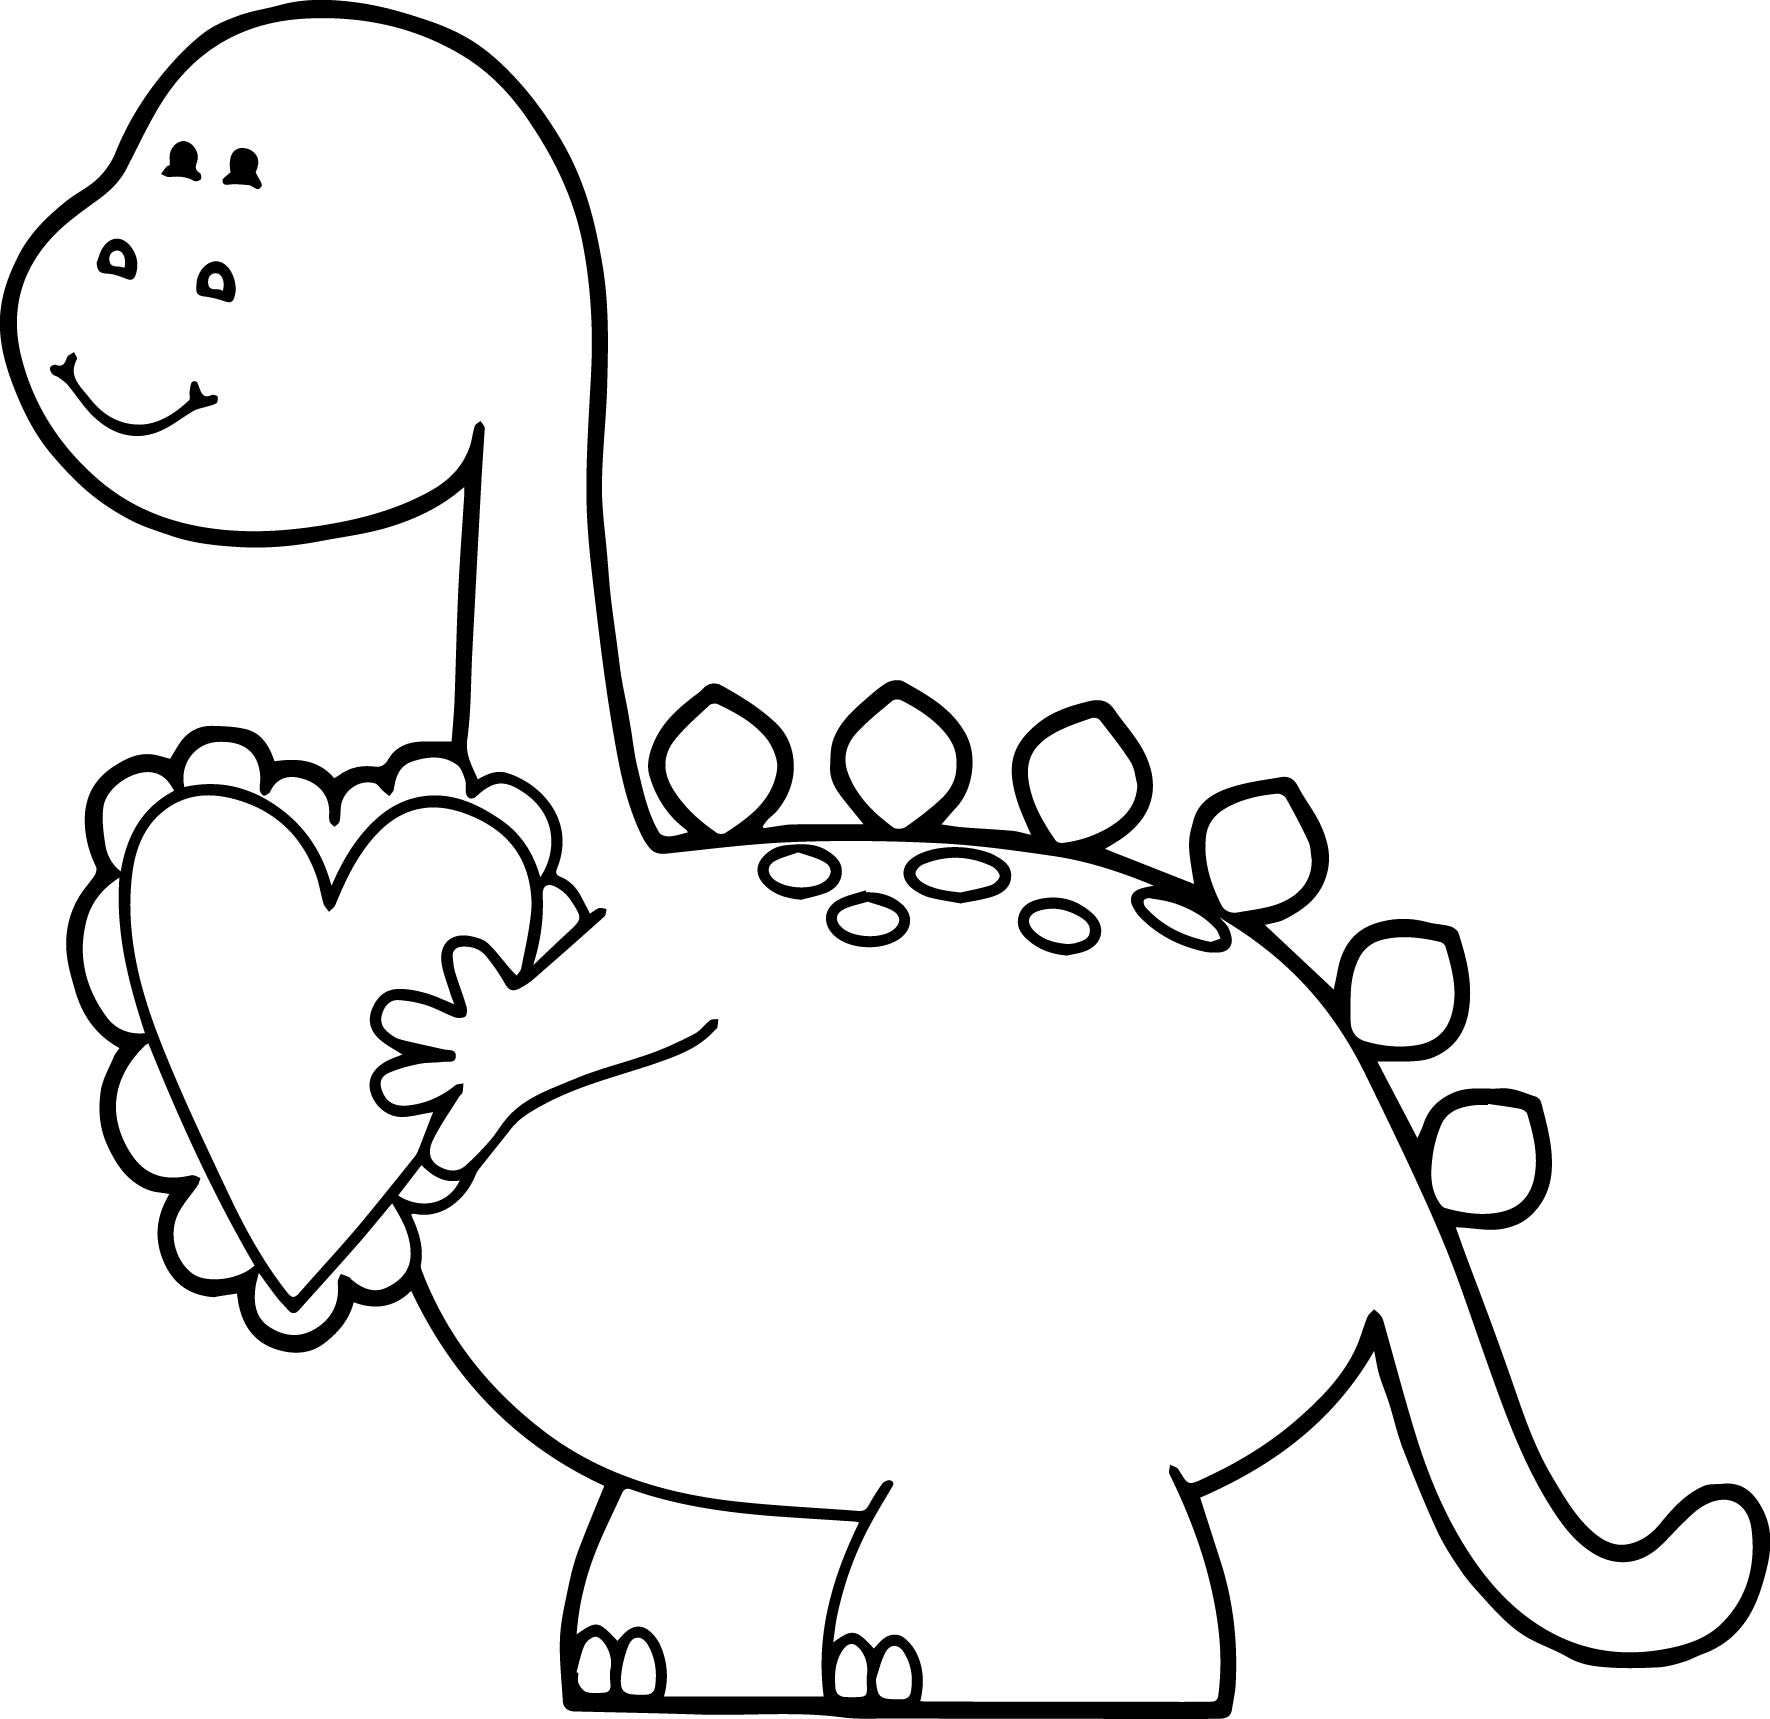 dino valentine coloring pages - photo#10